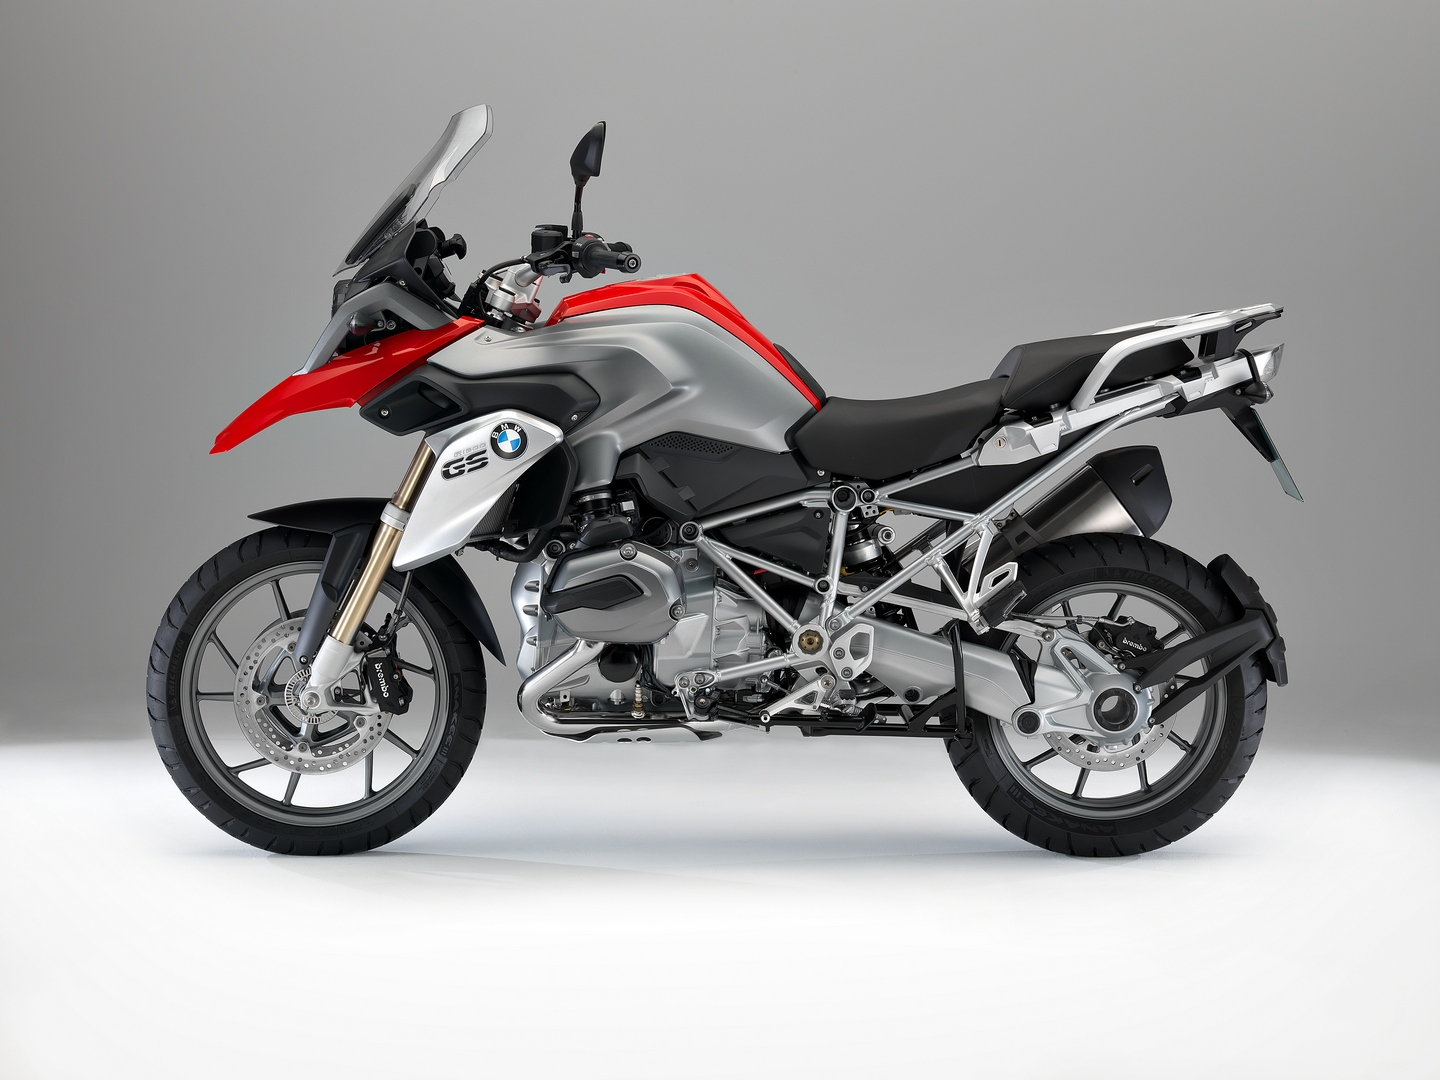 2013 bmw r 1200 gs looks awesome autoevolution. Black Bedroom Furniture Sets. Home Design Ideas